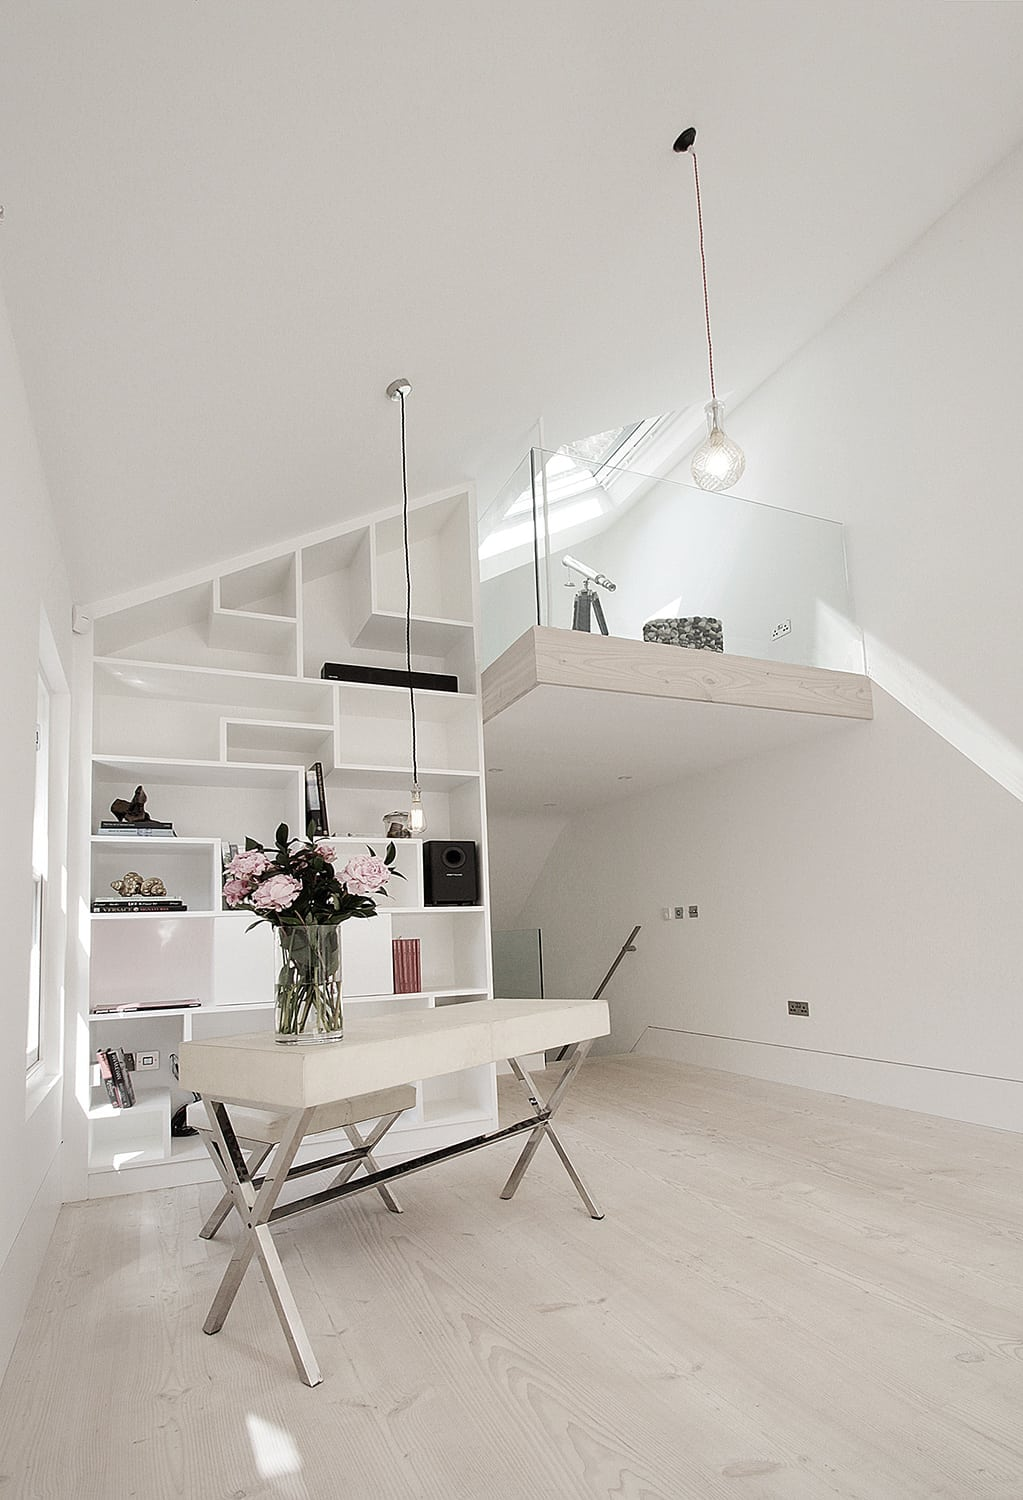 Hampstead Heath - residential house full refurbishment extension double height mezzanine